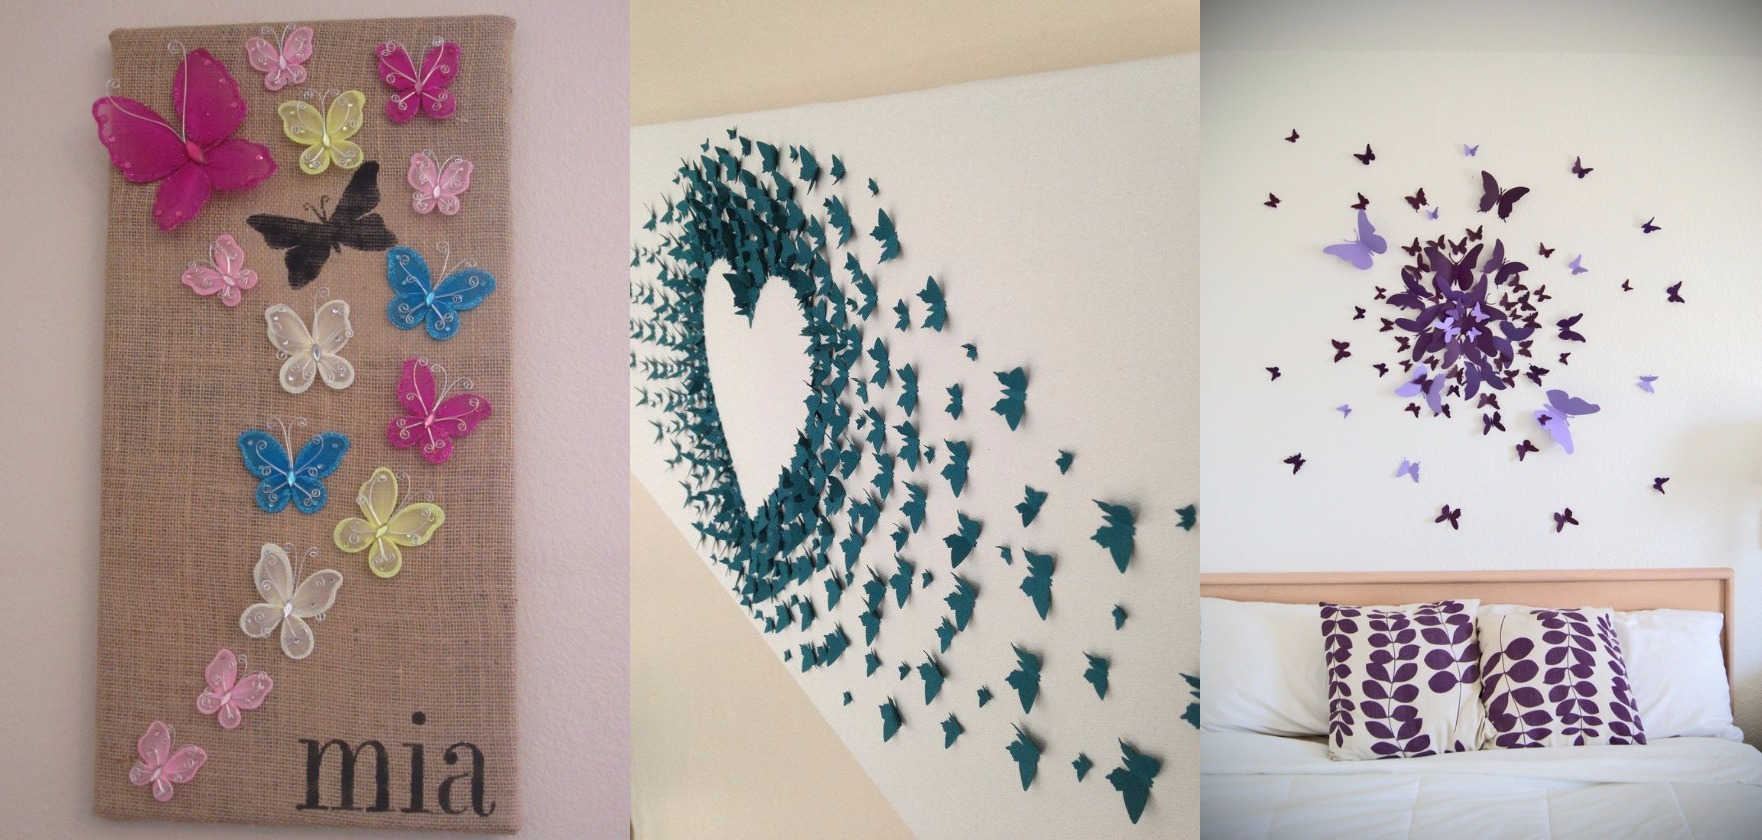 Best 10 Diy Butterfly Wall Decor Ideas With Directions A Diy This Month